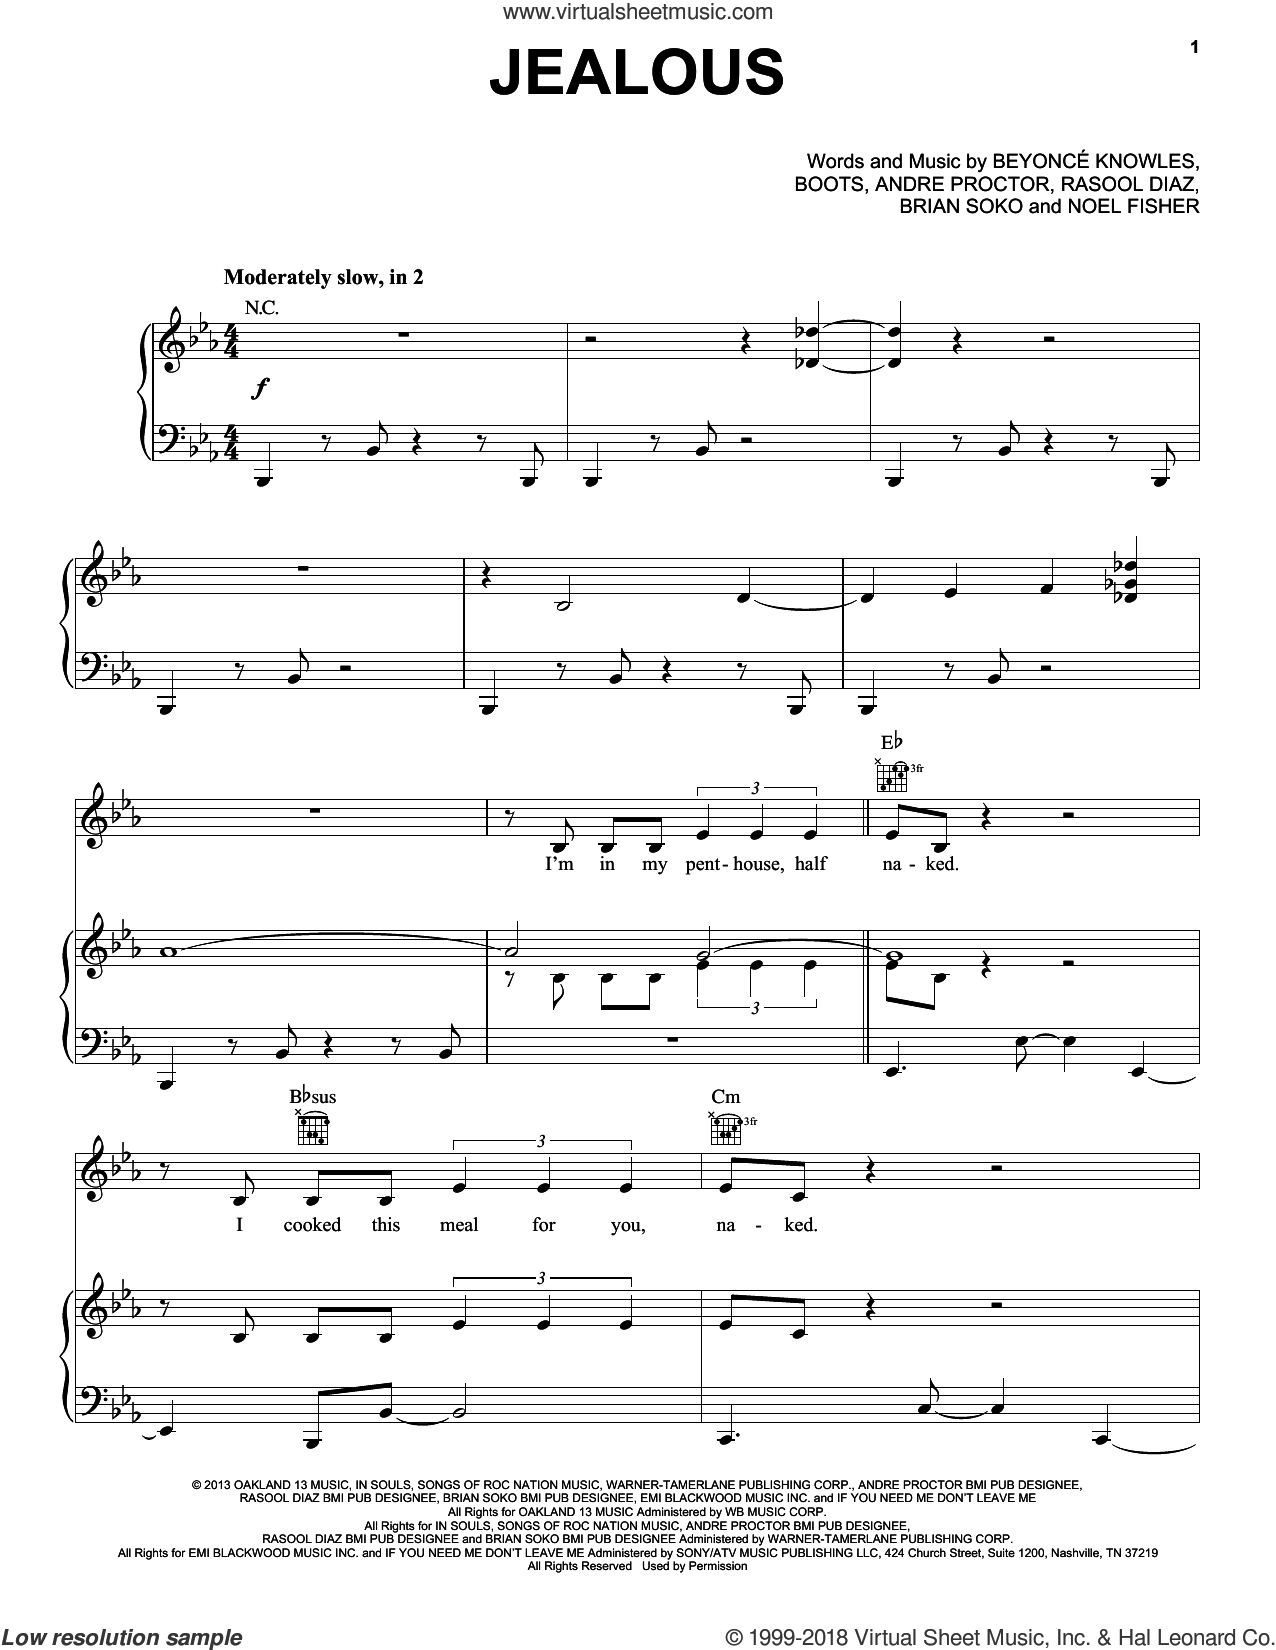 Jealous sheet music for voice, piano or guitar by Rasool Diaz, Beyonce, Beyonce Knowles and Noel Fisher. Score Image Preview.